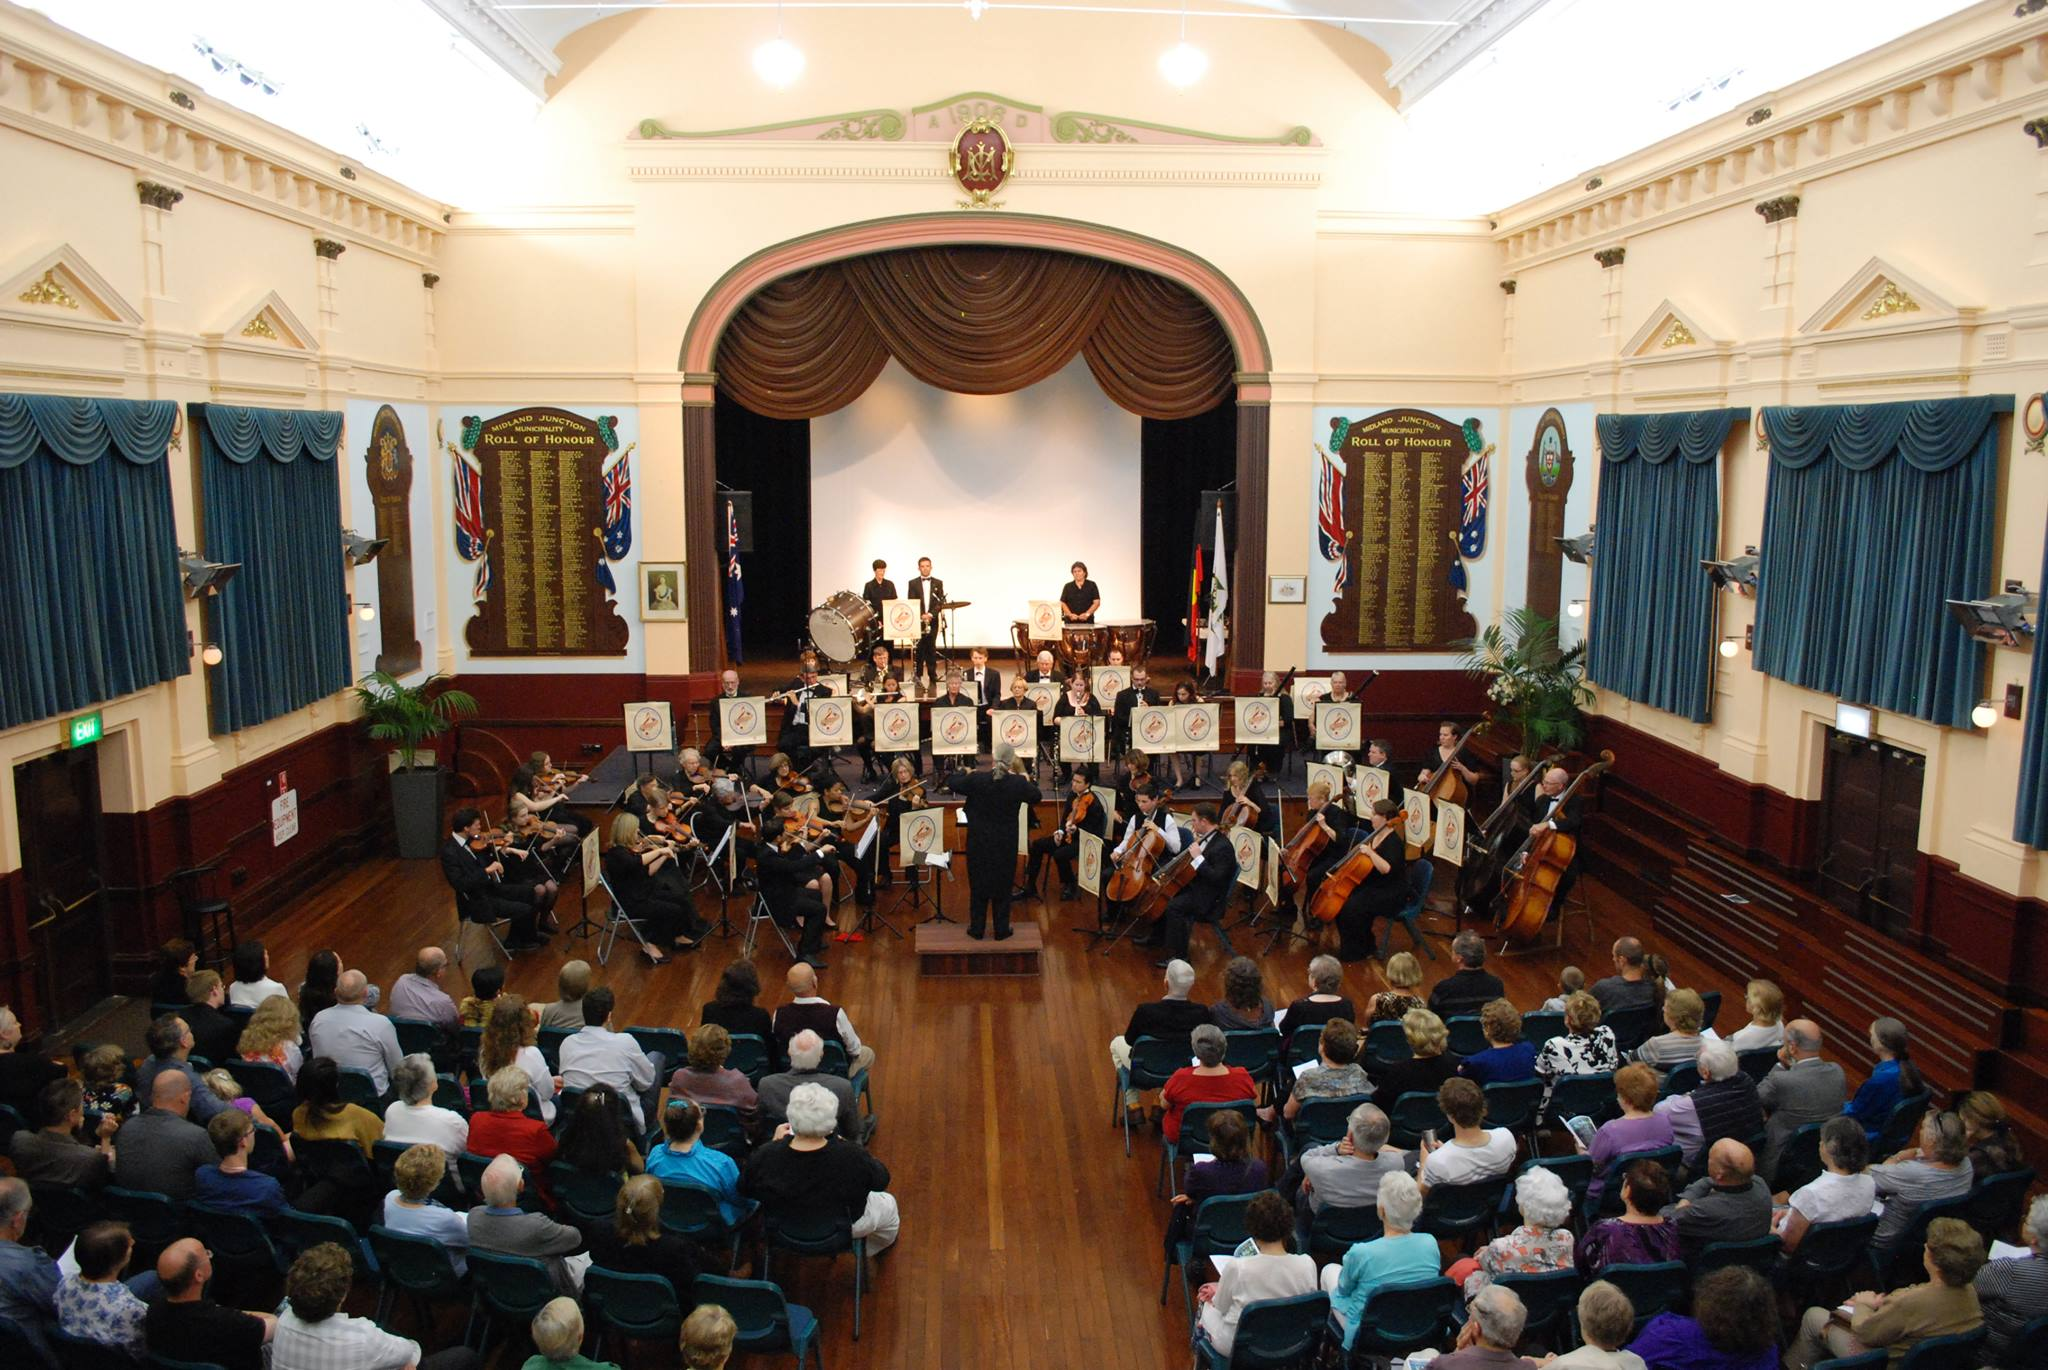 Hills Symphony Orchestra celebrates 400 years of William Shakespeare